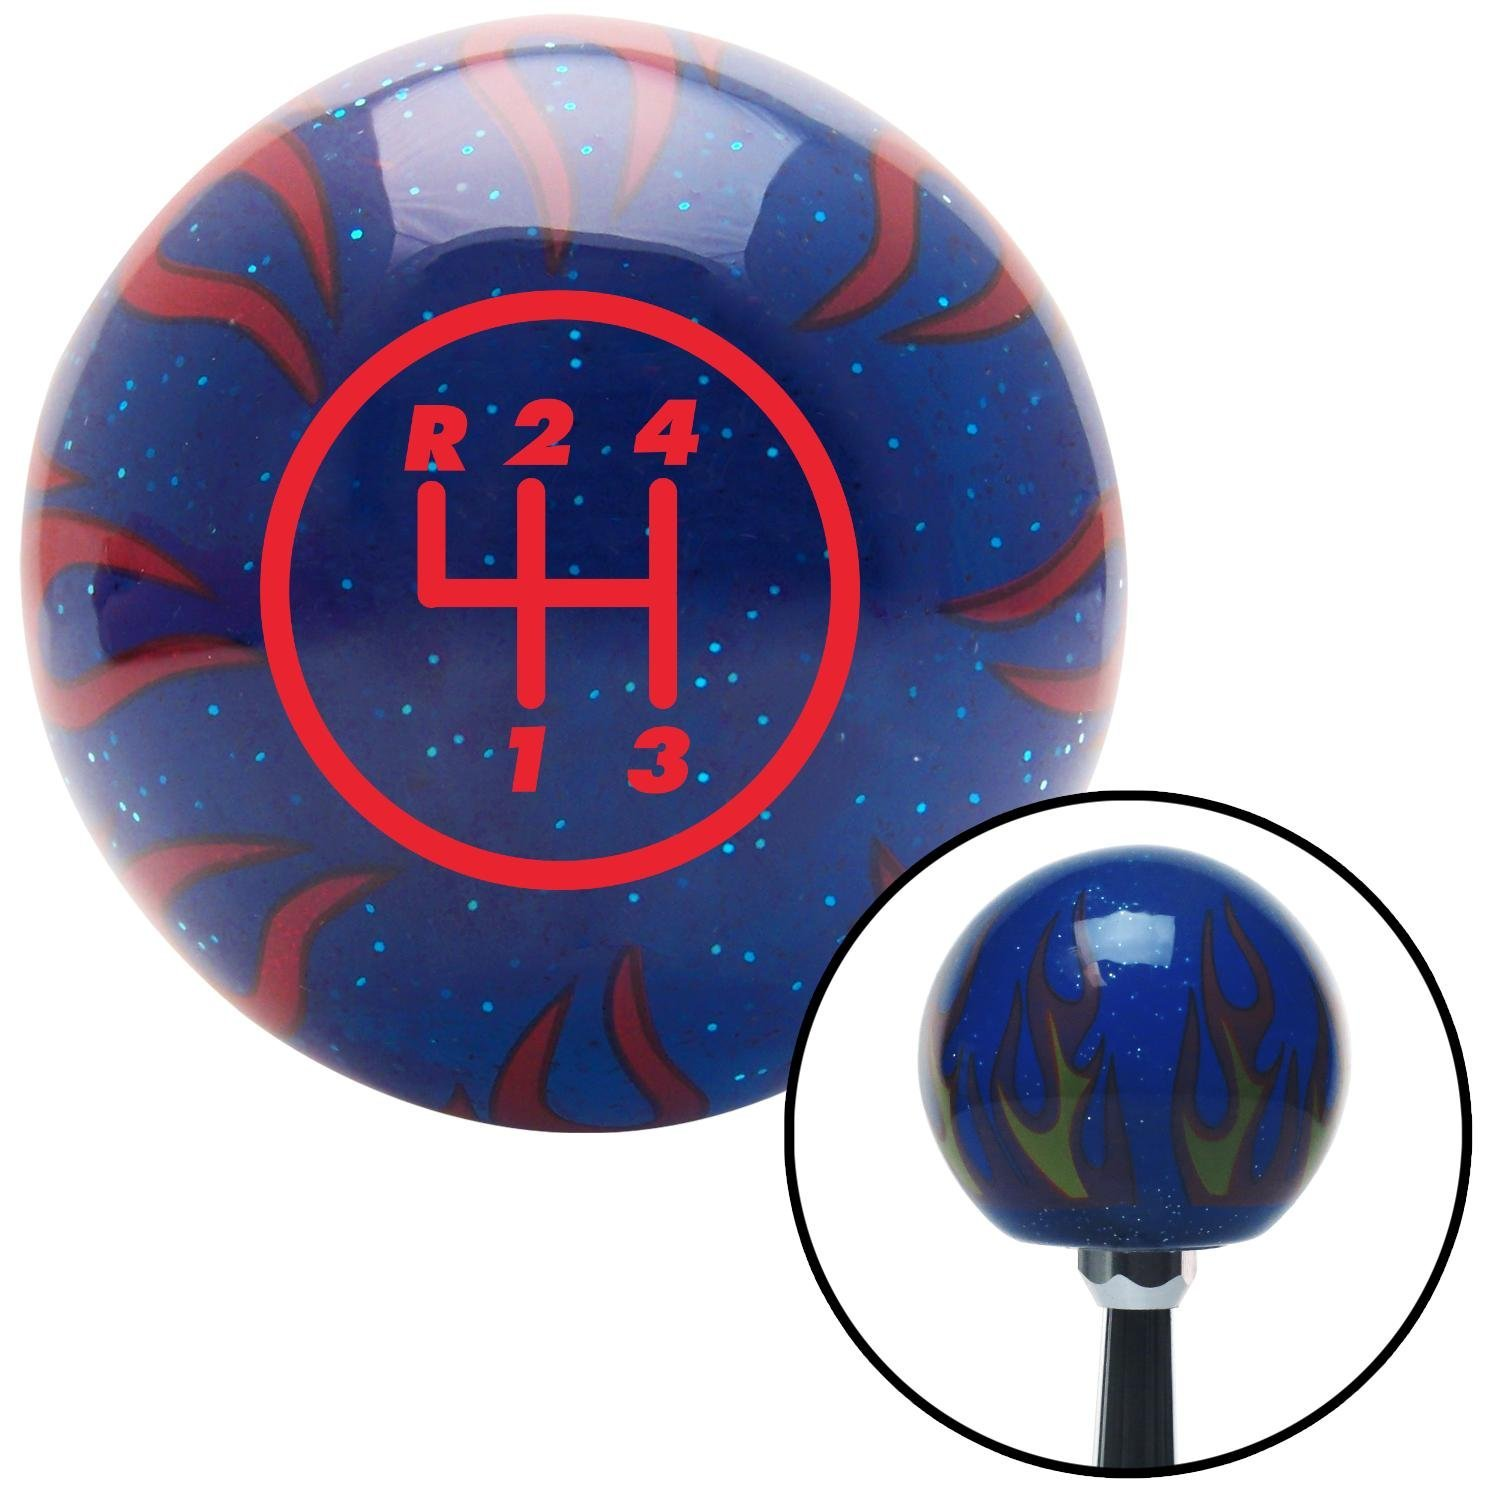 Red 4 Speed Shift Pattern - 4RUL American Shifter 244080 Blue Flame Metal Flake Shift Knob with M16 x 1.5 Insert